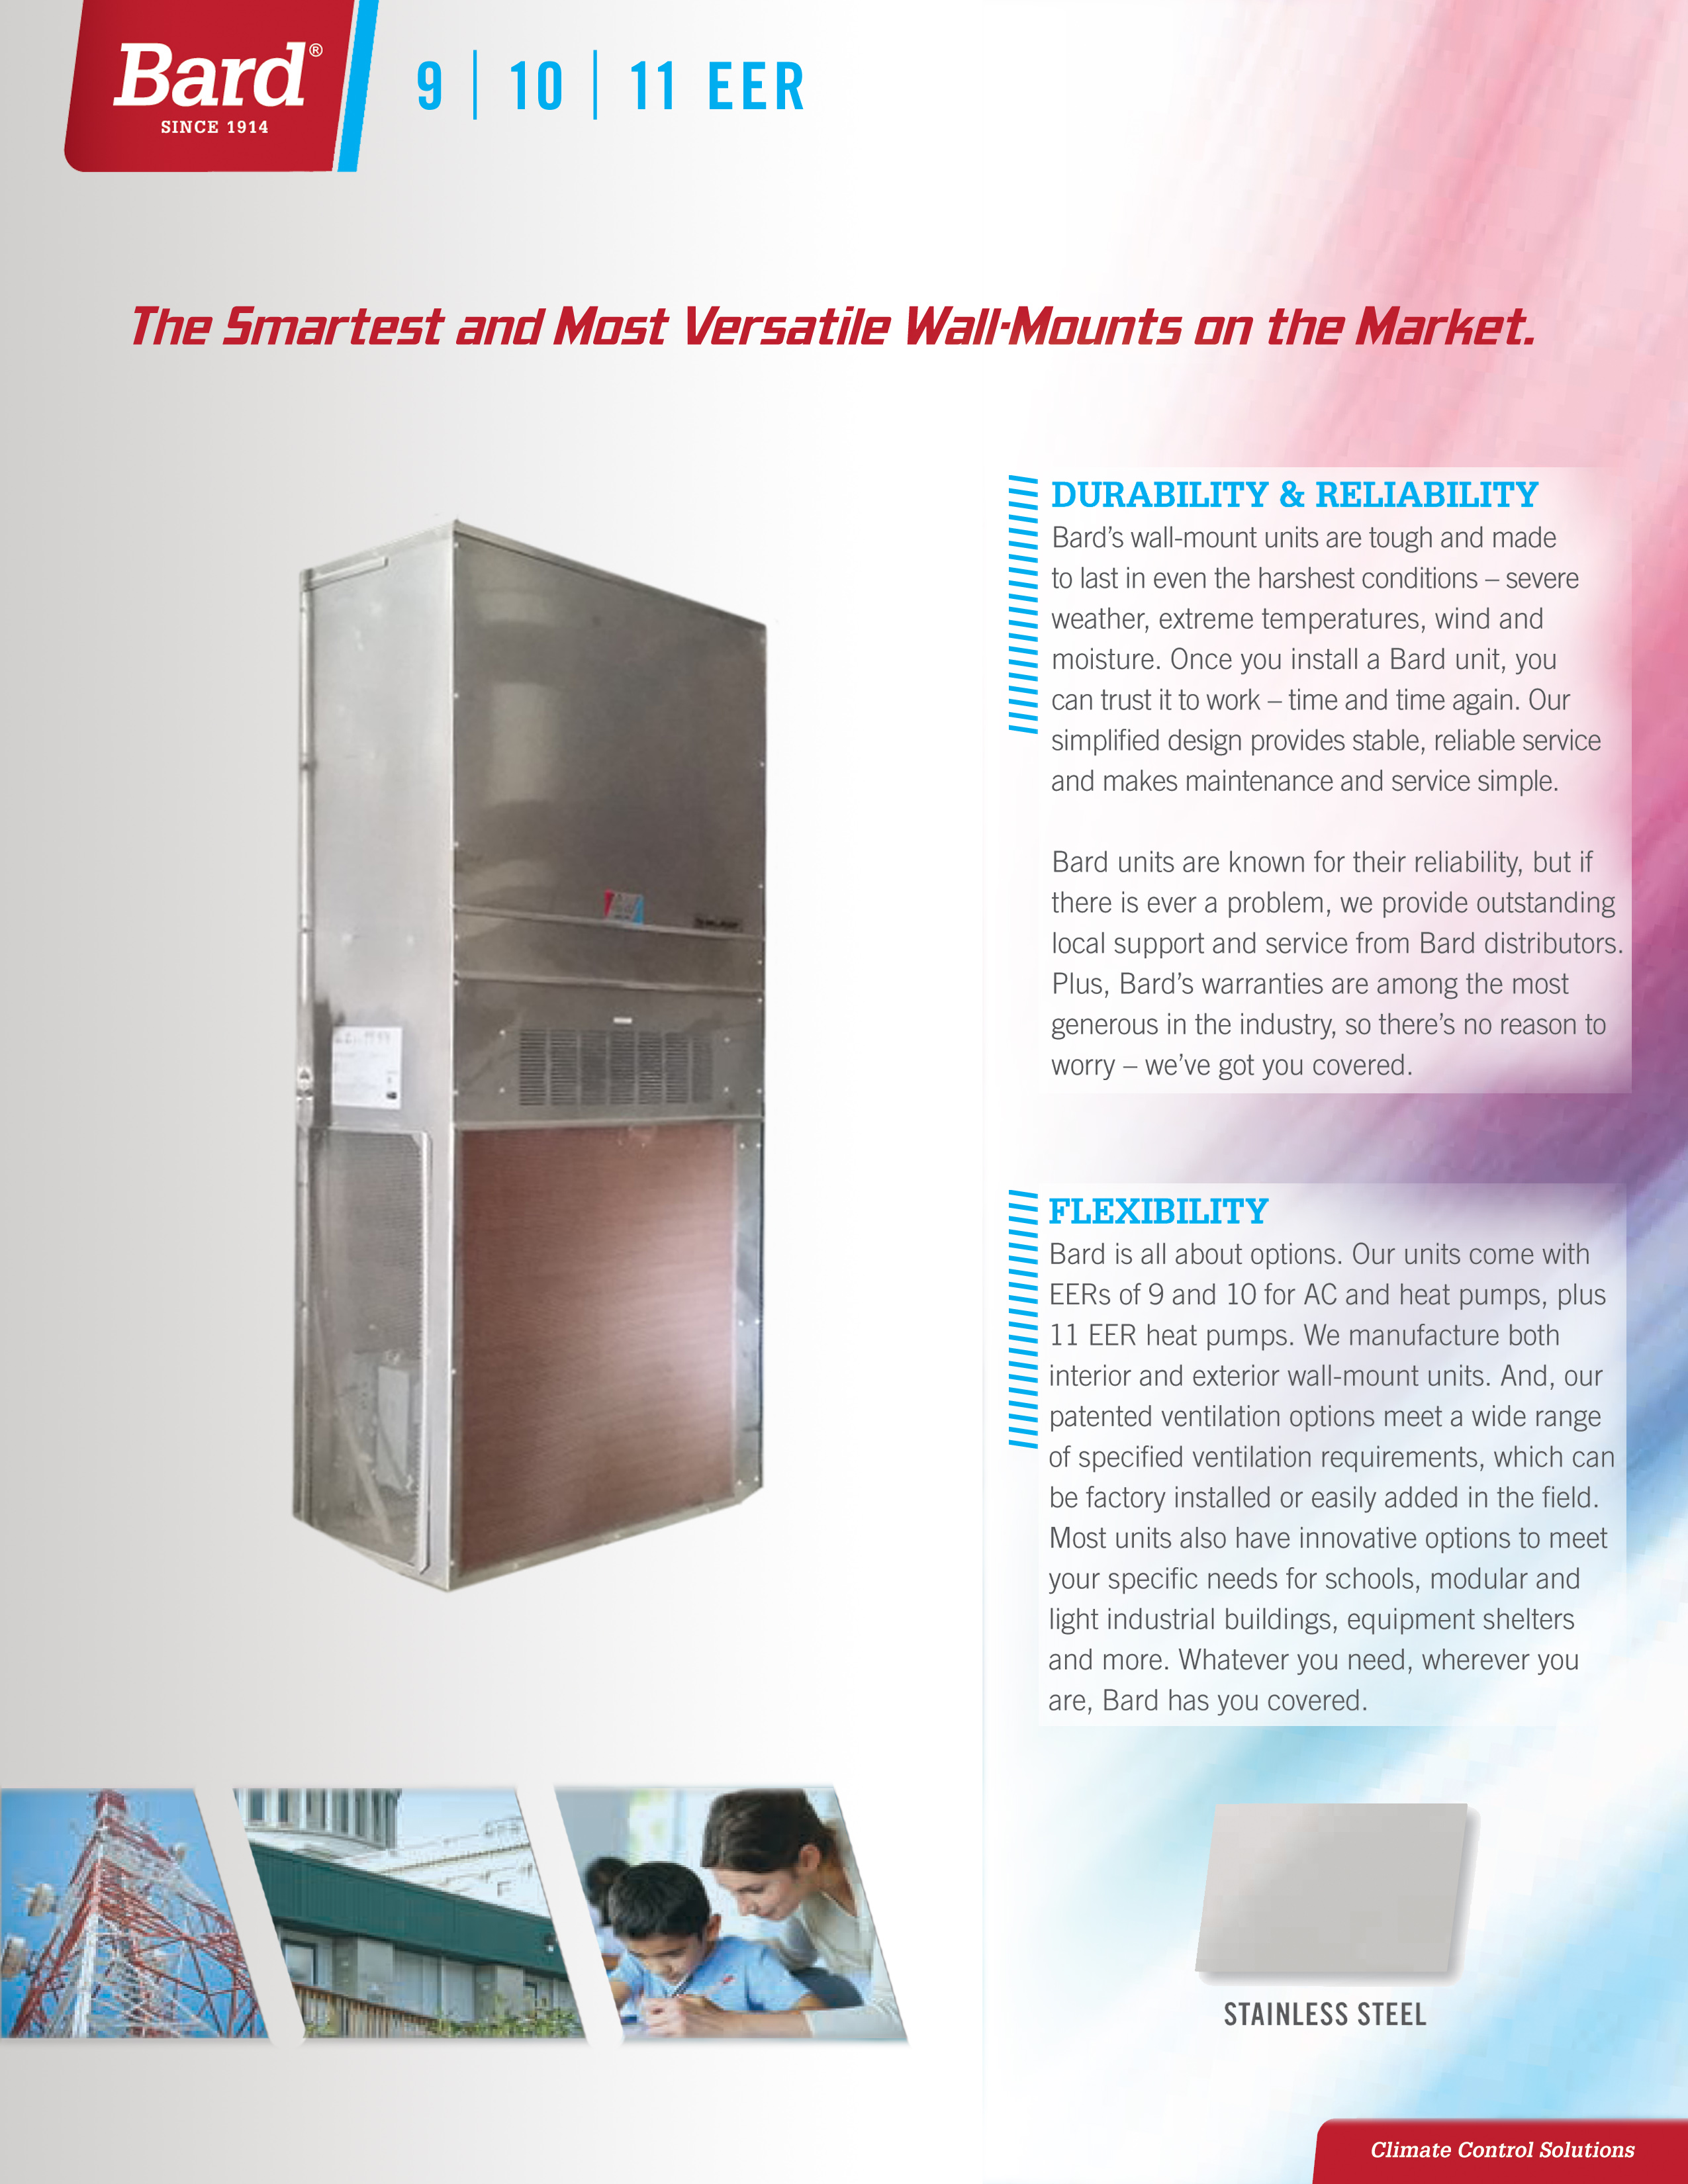 5 Ton Bard Stainless Steel Phenolic Coated Heat Pump Wall Hung Condenser Fan Wiring Diagram Coastal Installs Wastewater Treatment Plants Gas Oil Refineries Battery Manufacturers Areas Near Sulfur Water Wineries Chemical